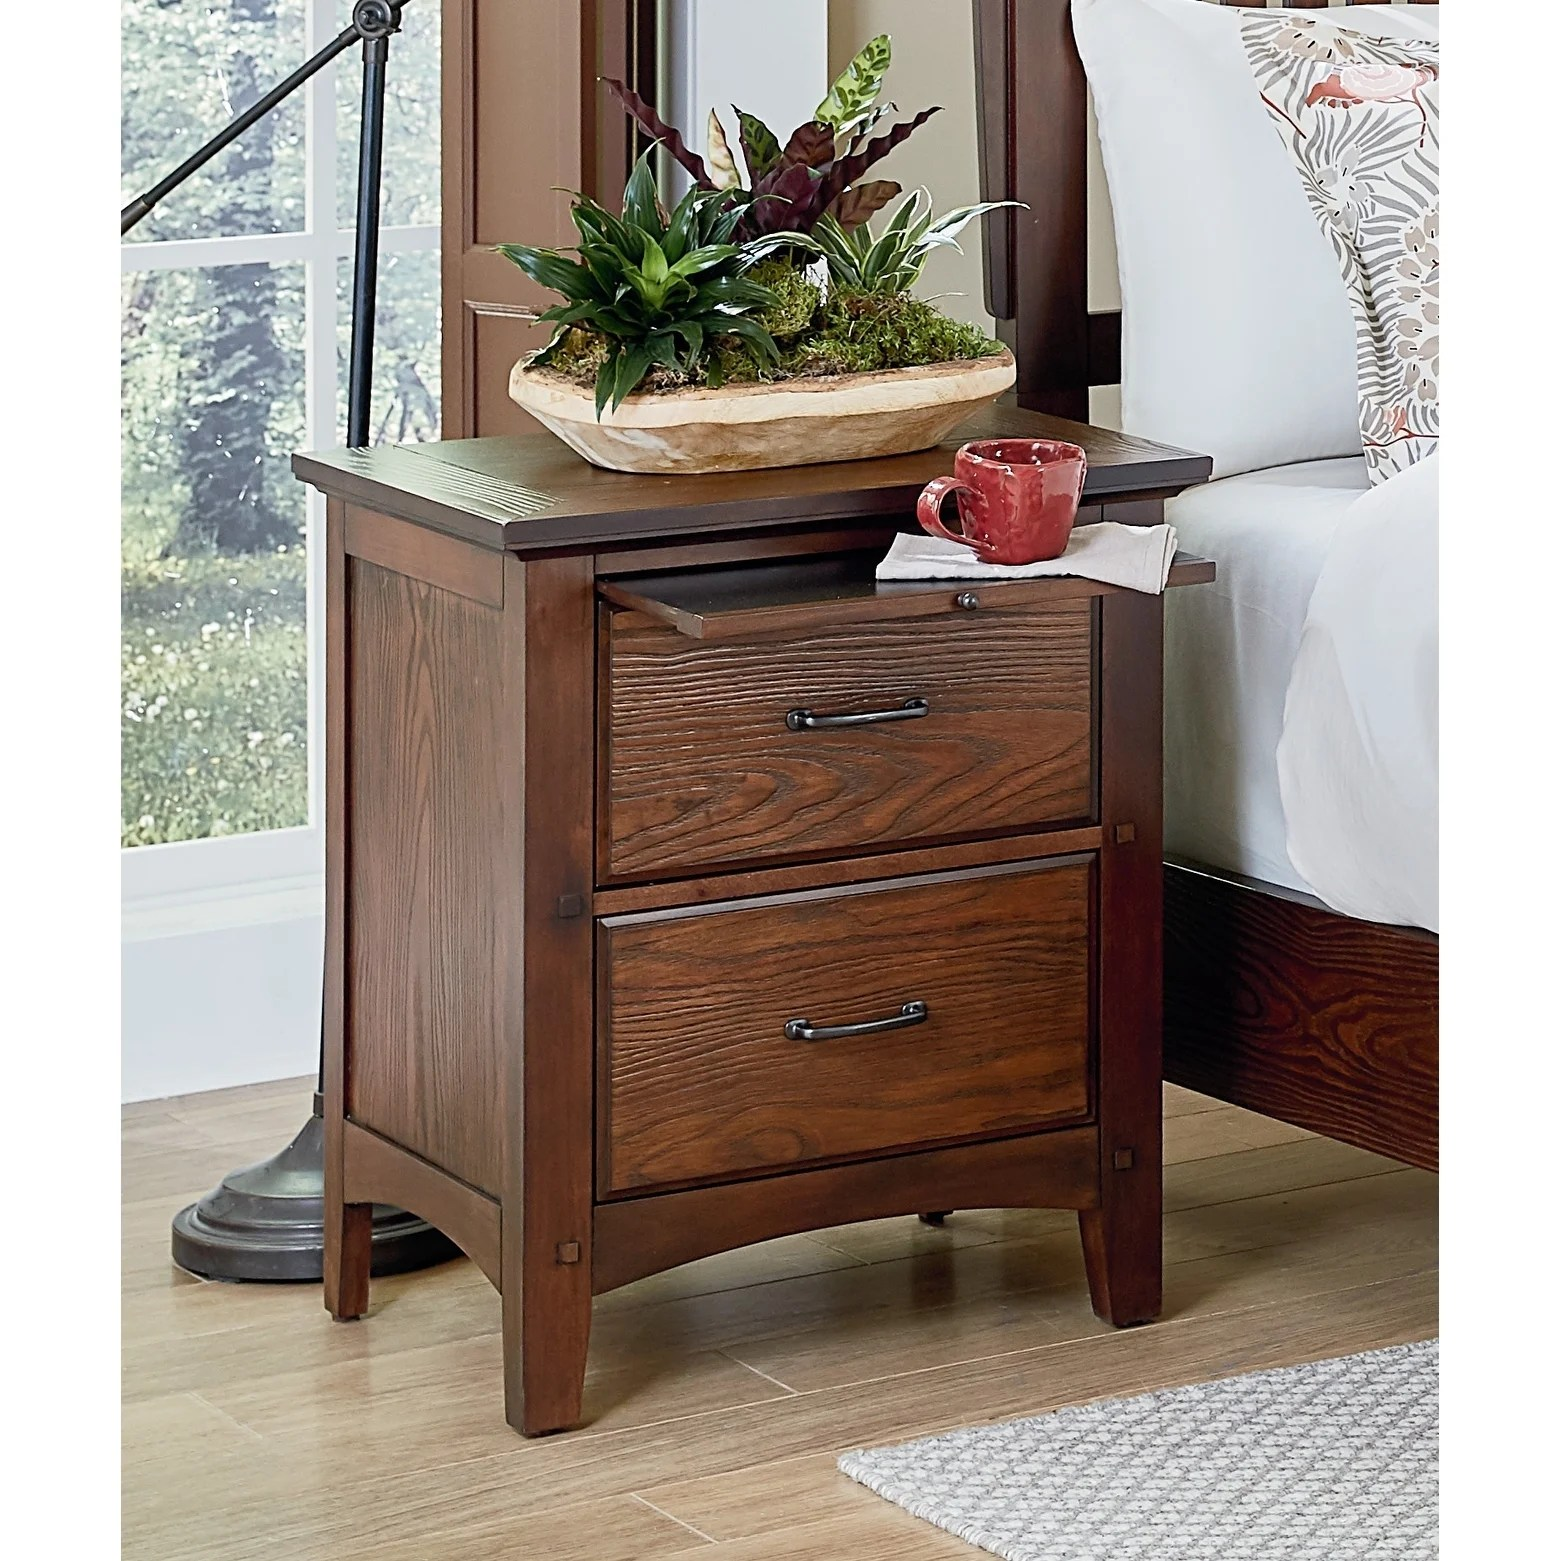 Osp Home Furnishings Modern Mission Bedroom 2 Drawer Nightstand With Tray In Vintage Oak